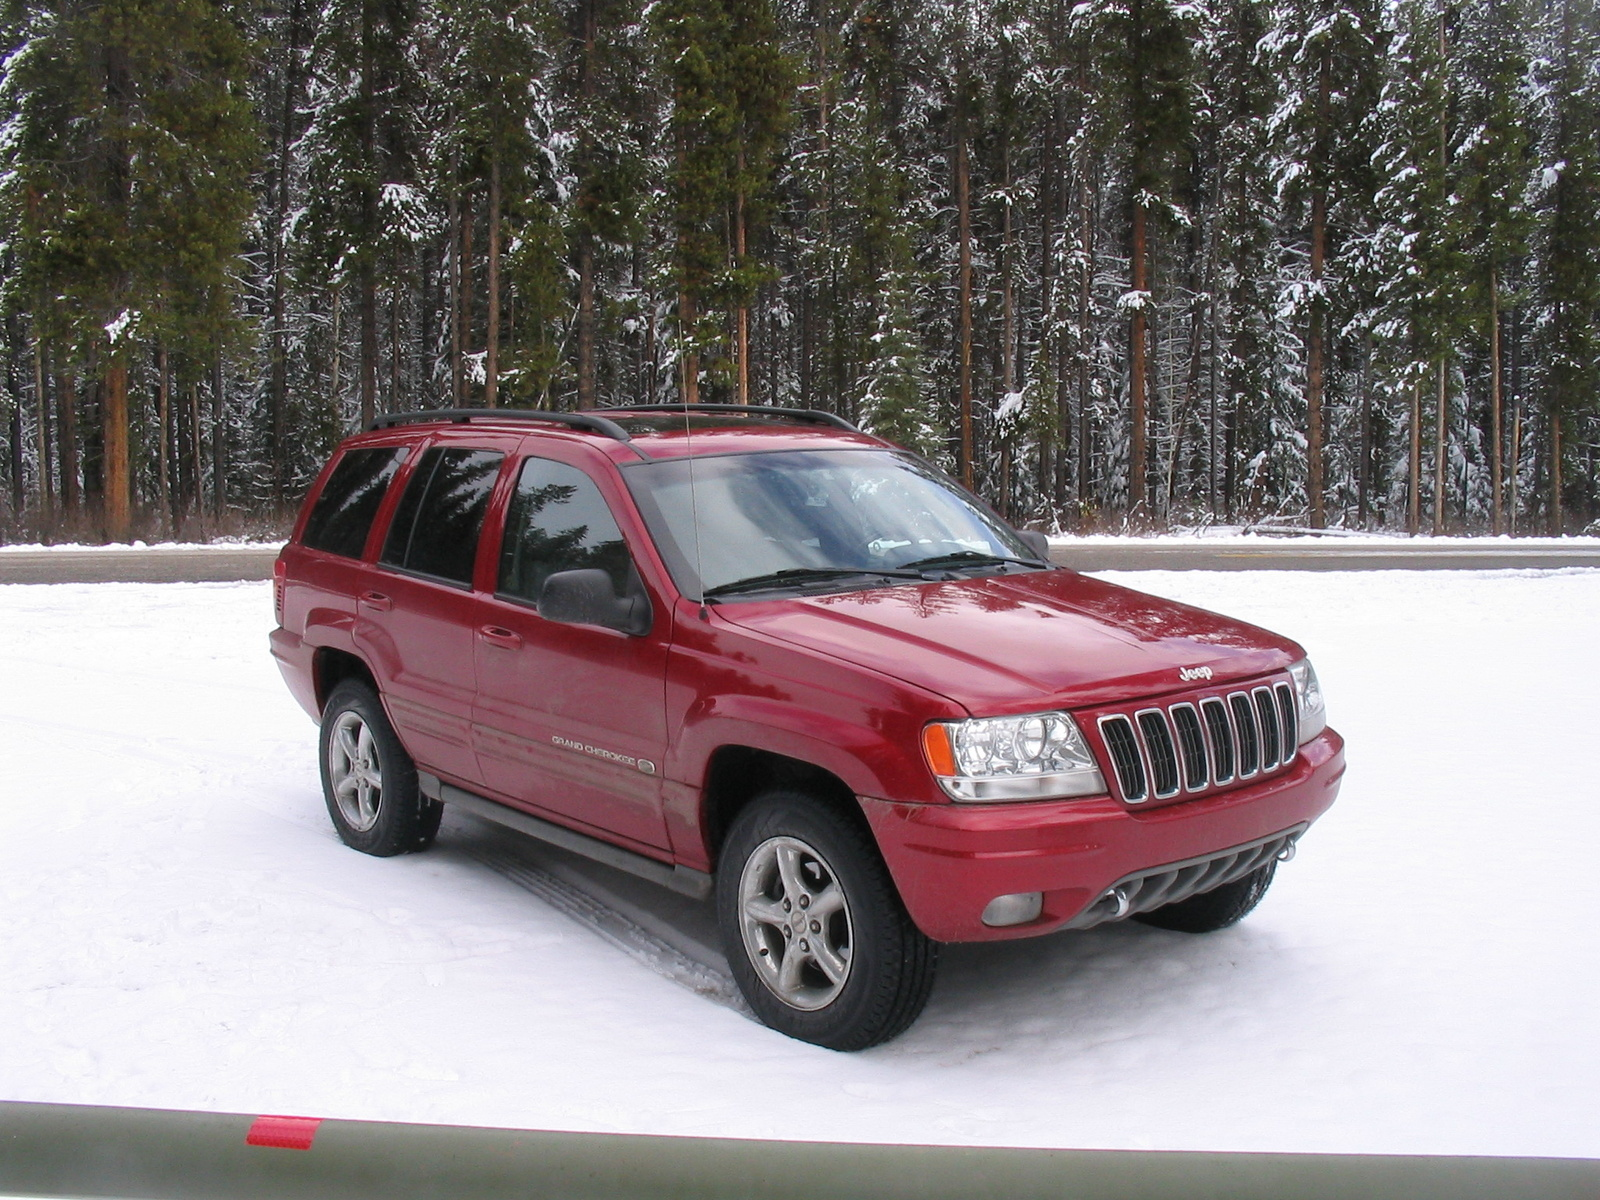 Picture of 2002 jeep grand cherokee overland exterior gallery_worthy